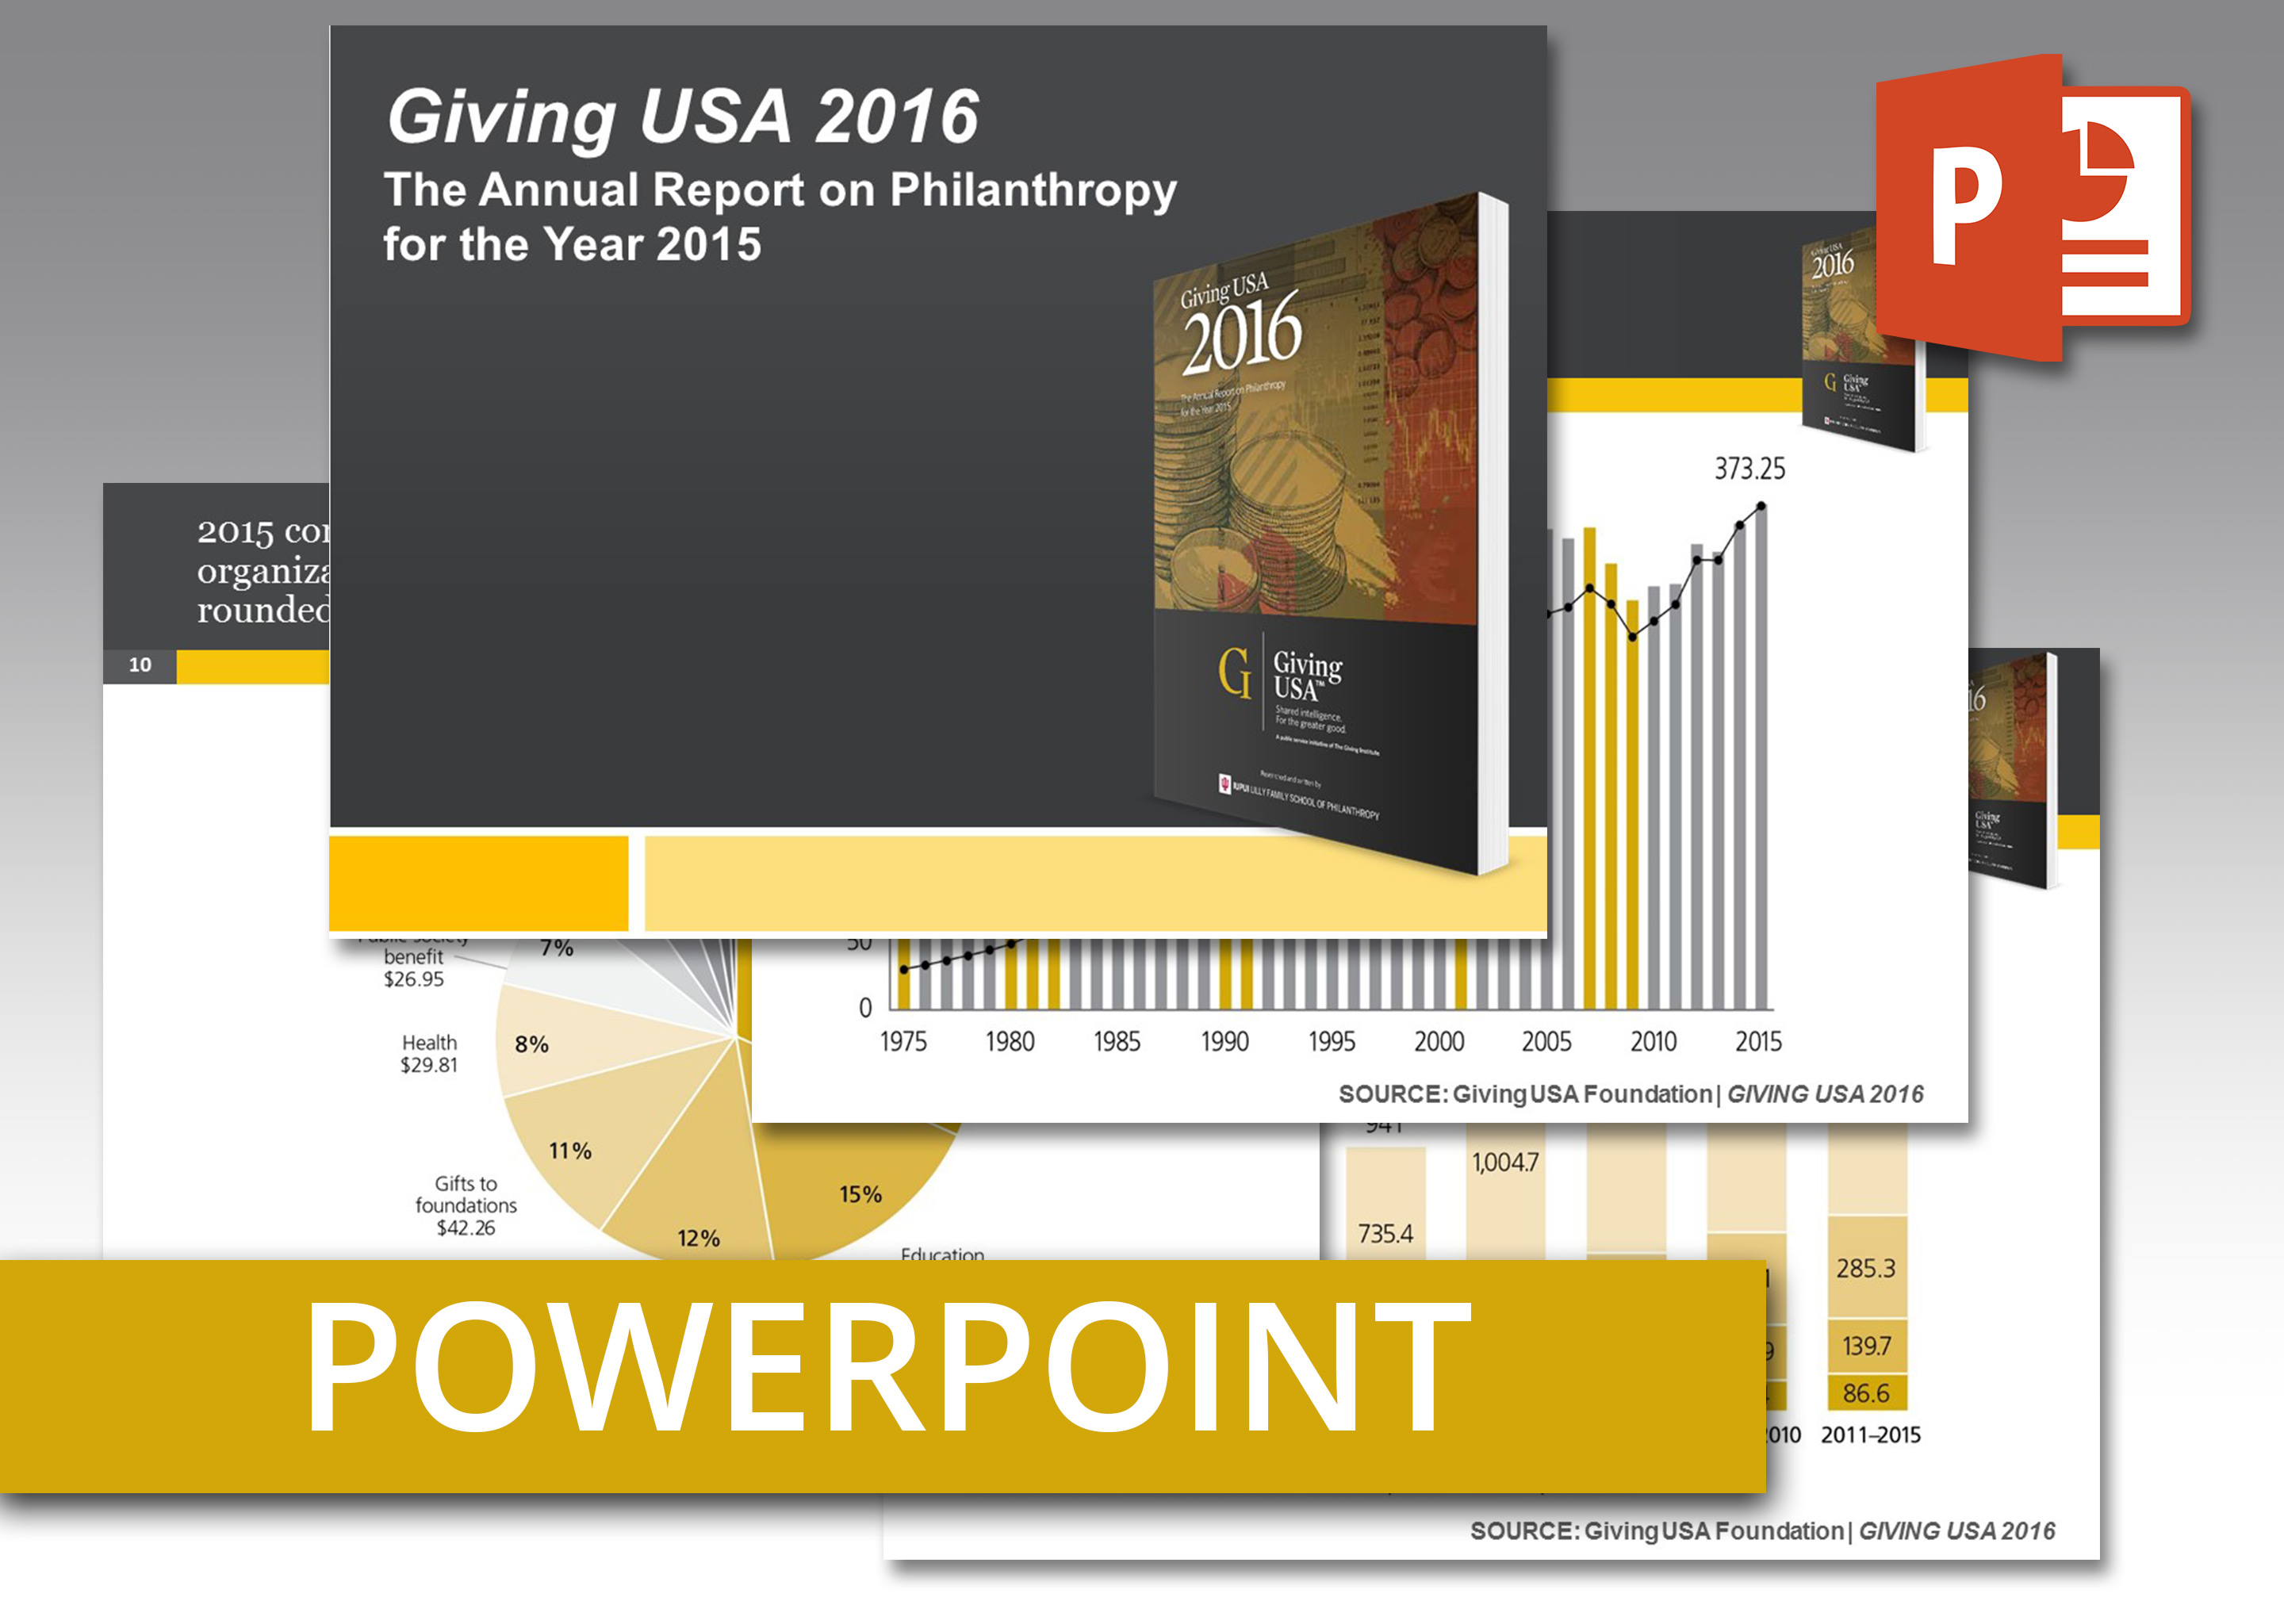 Coolmathgamesus  Nice Giving Usa  Powerpoint An Easytouse Presentation Of Report  With Fair Giving Usa  Powerpoint An Easytouse Presentation Of Report Findings Including Talking Points With Lovely The Brain Powerpoint Also Powerpoint Jpeg Resolution In Addition Powerpoint No Text Converter Is Installed For This File Type And Free Law Powerpoint Templates As Well As Microsoft  Powerpoint Additionally Powerpoint Business From Givingusaorg With Coolmathgamesus  Fair Giving Usa  Powerpoint An Easytouse Presentation Of Report  With Lovely Giving Usa  Powerpoint An Easytouse Presentation Of Report Findings Including Talking Points And Nice The Brain Powerpoint Also Powerpoint Jpeg Resolution In Addition Powerpoint No Text Converter Is Installed For This File Type From Givingusaorg